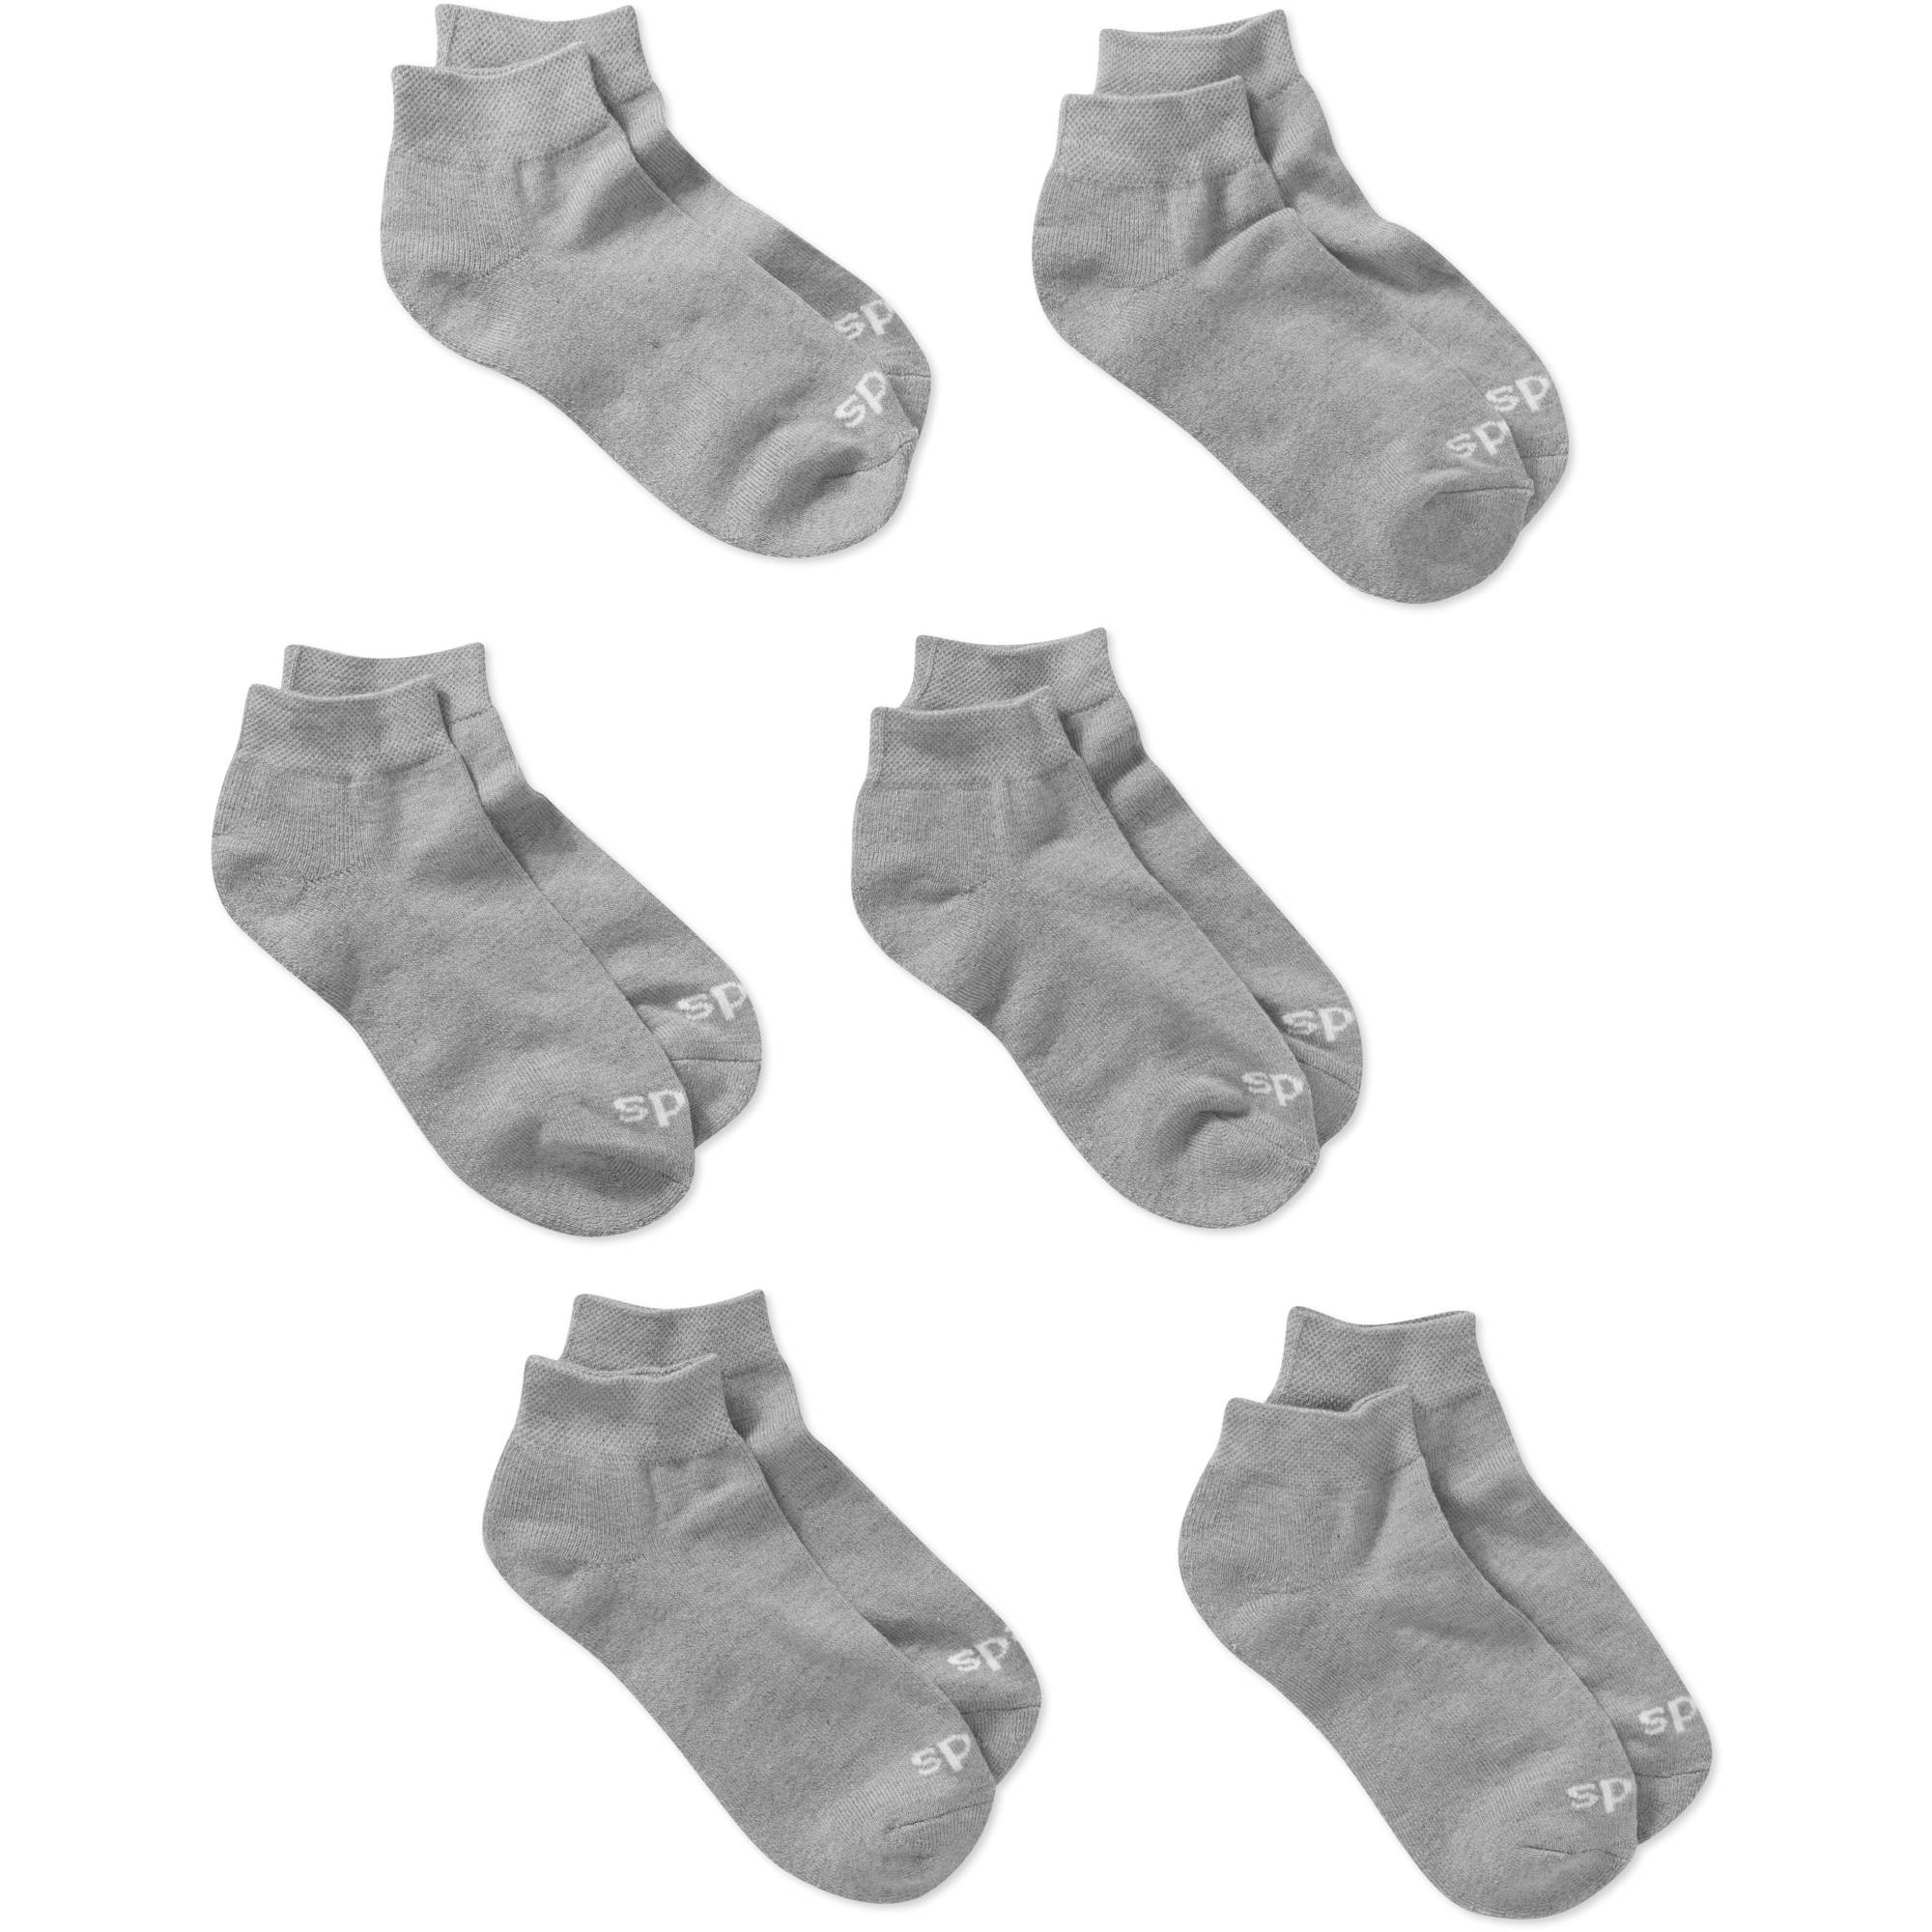 6 Pack Low Cut Socks